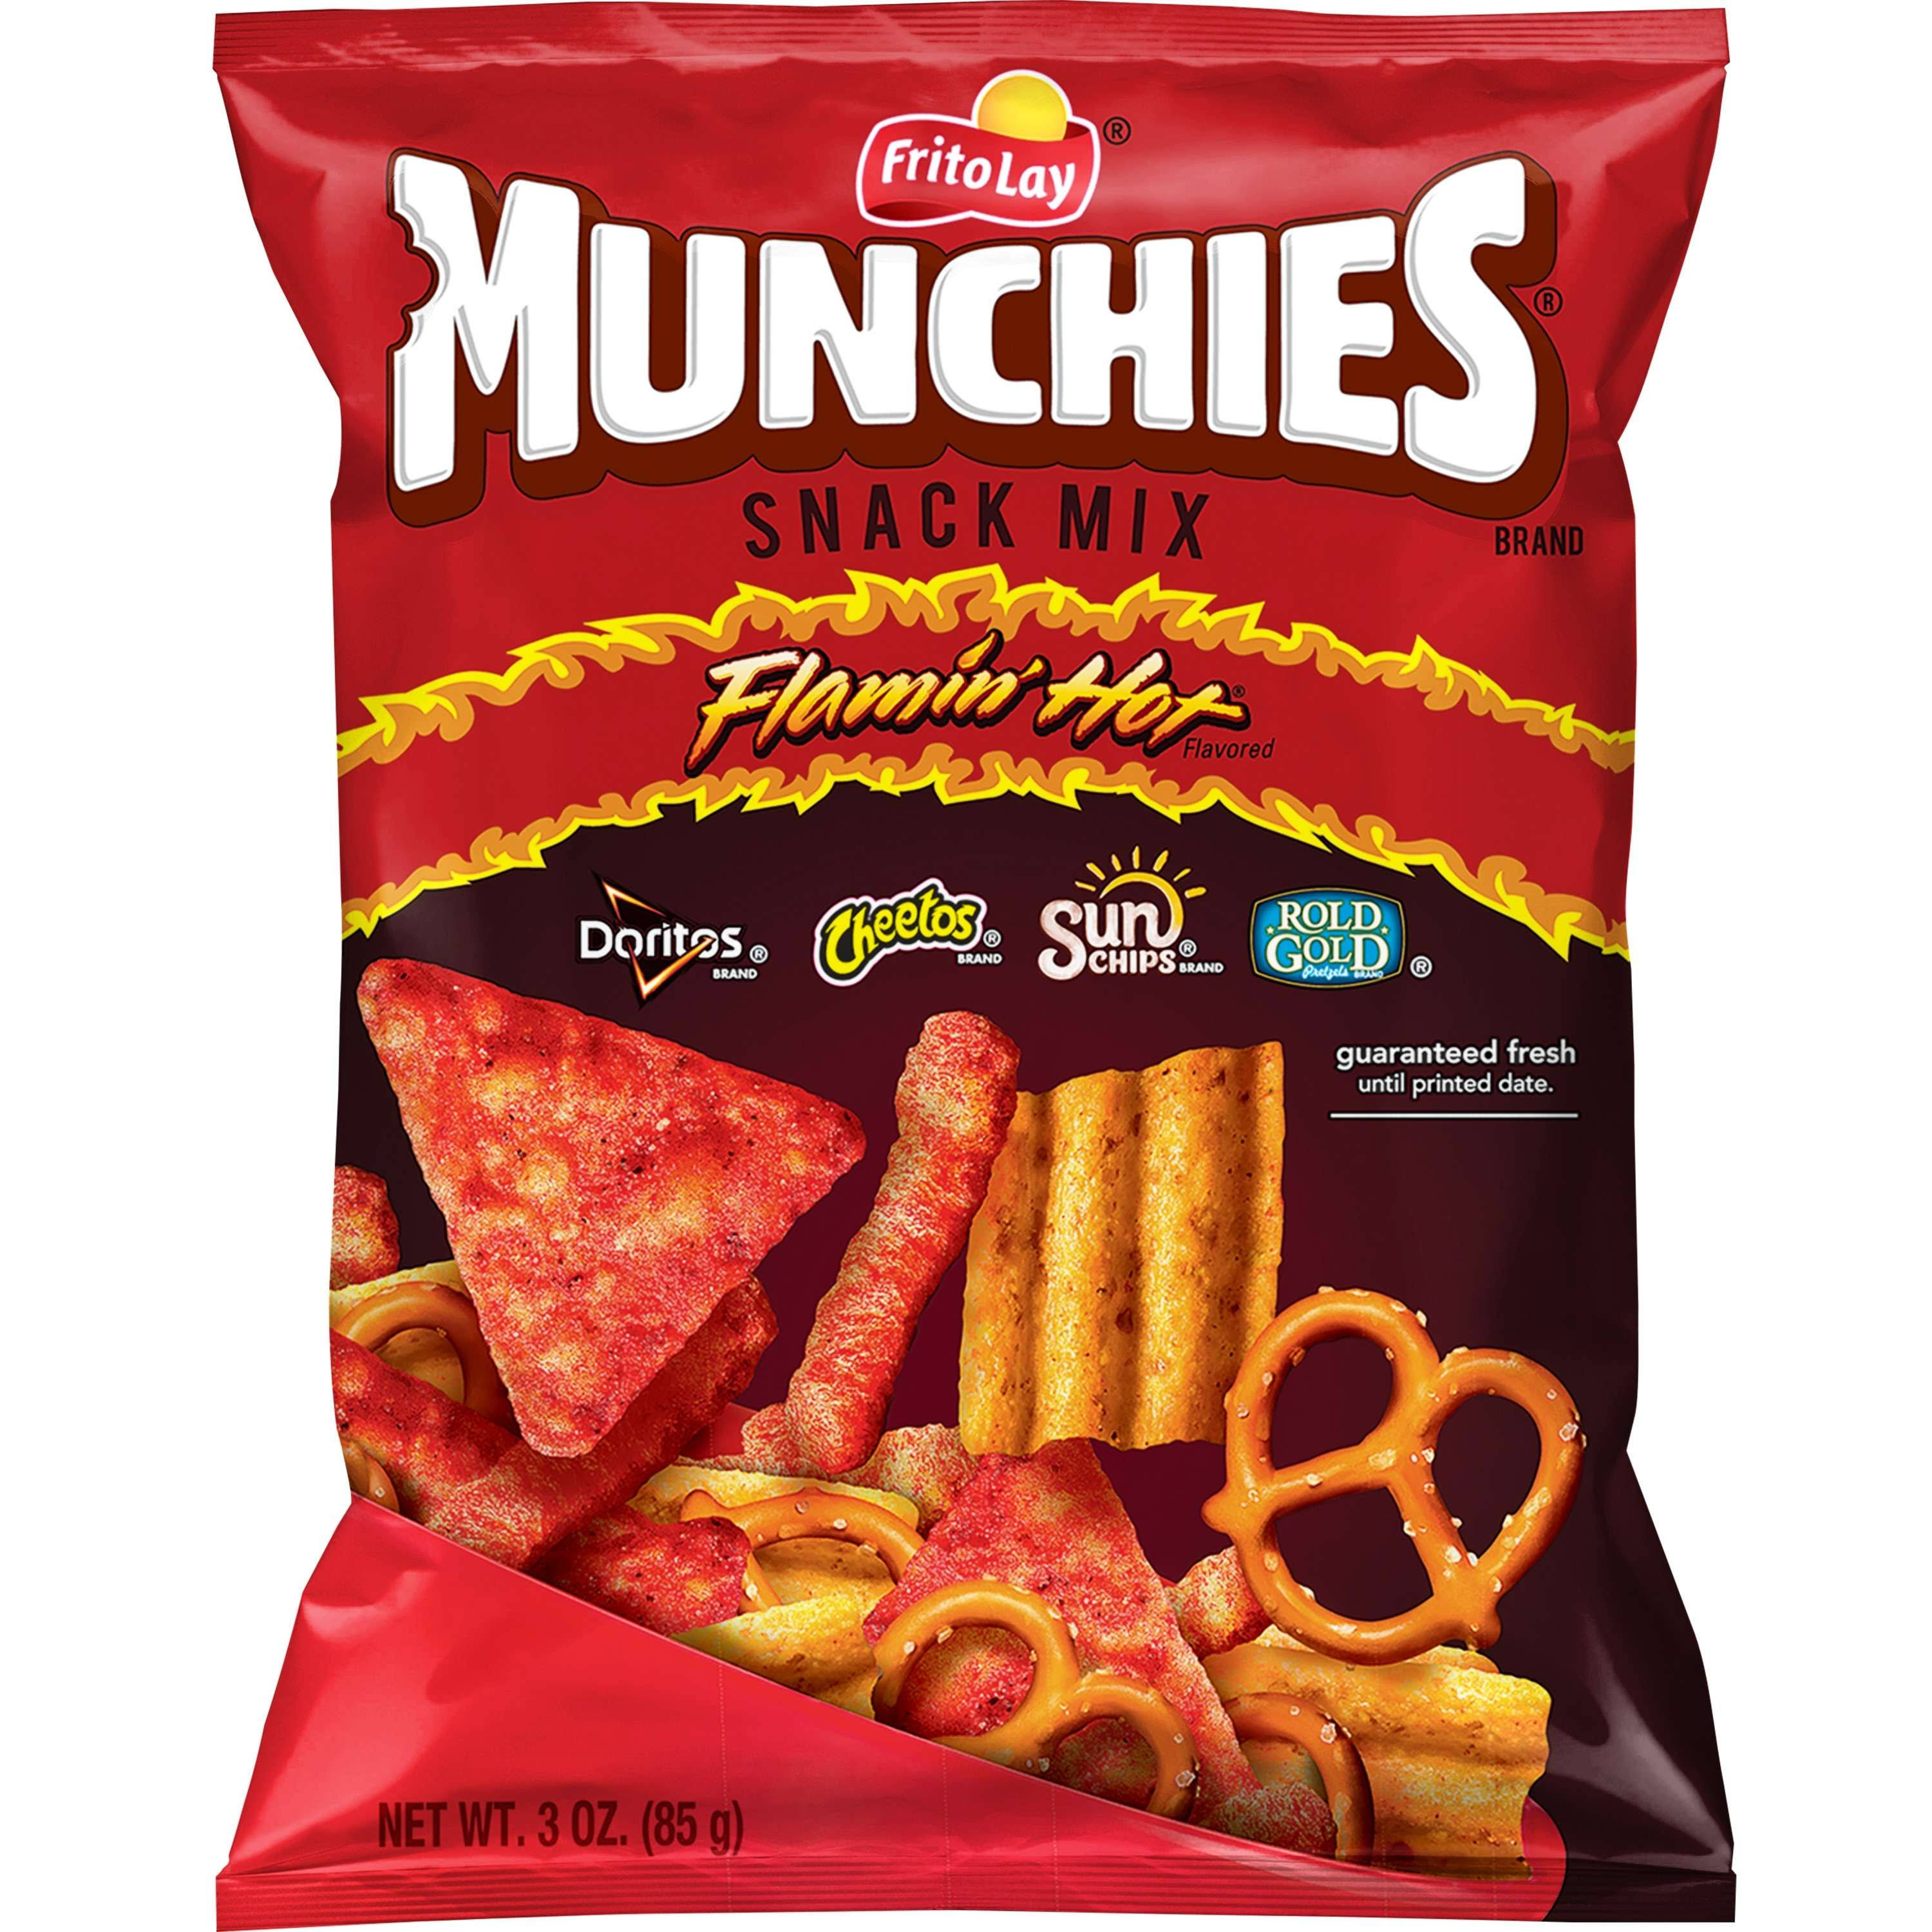 Munchies Flamin' Hot Snack Mix - 3oz